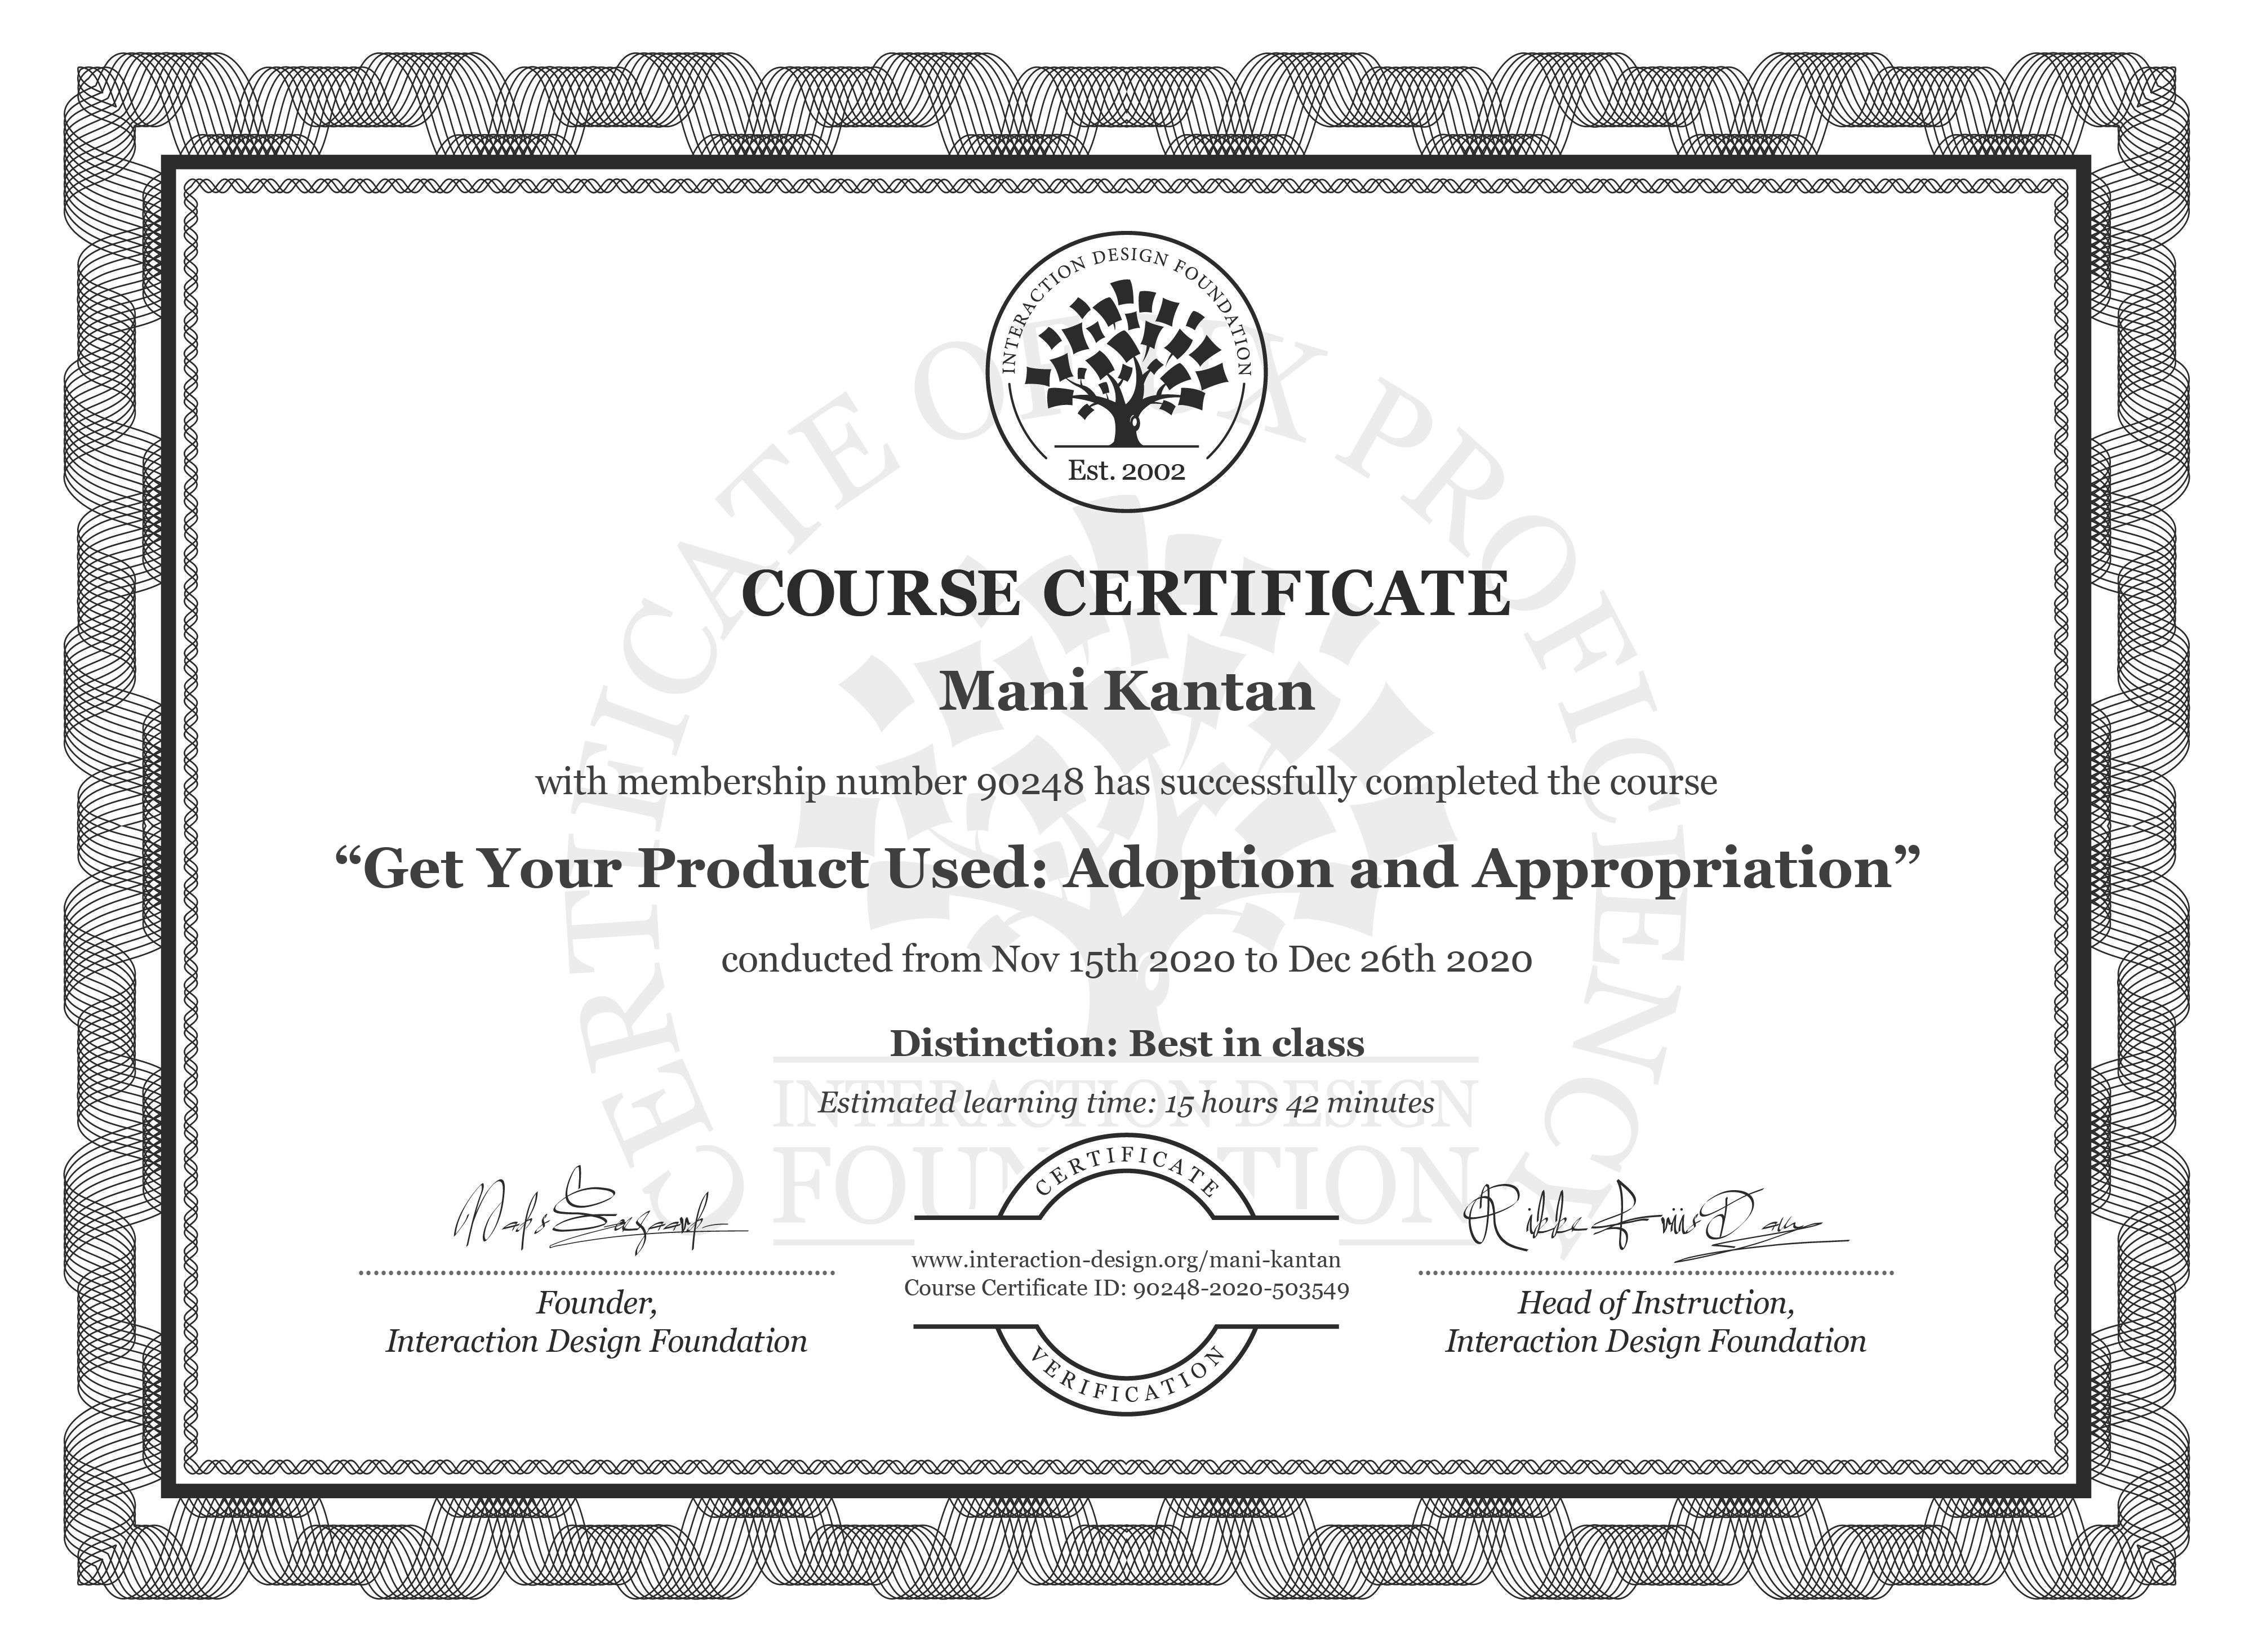 Mani Kantan's Course Certificate: Get Your Product Used: Adoption and Appropriation